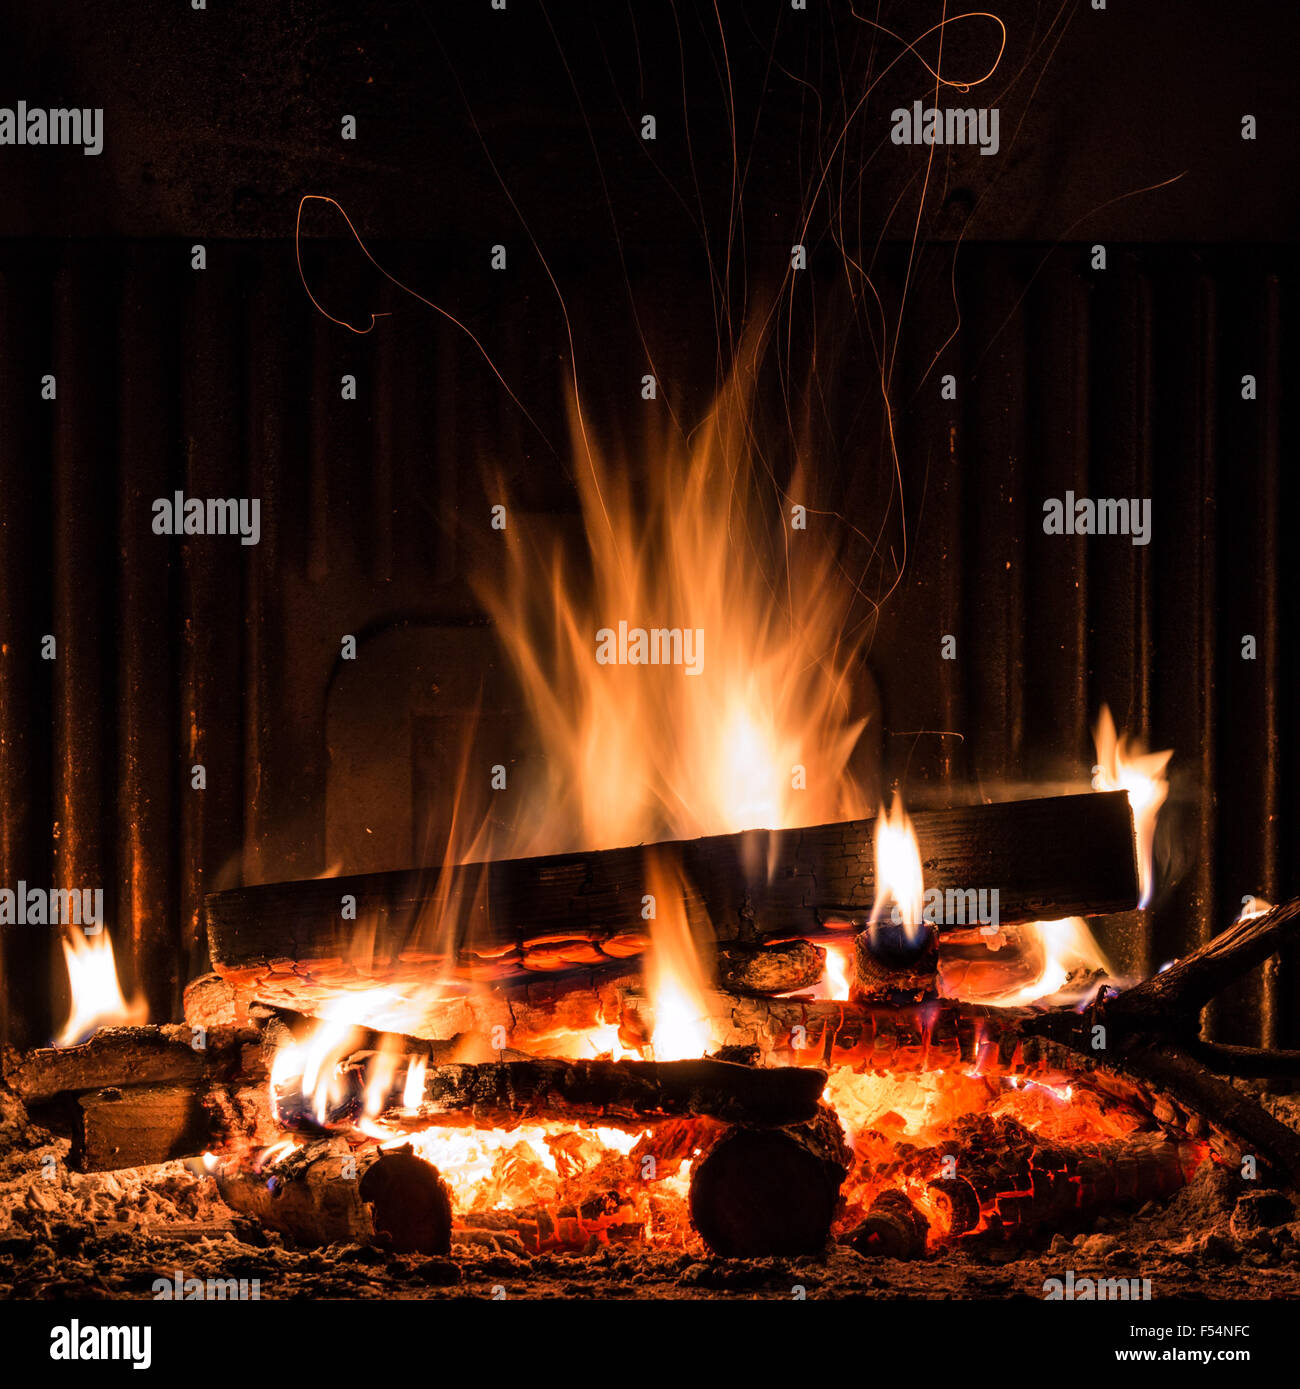 Fireplace with blazing flames, view of the fire - Stock Image